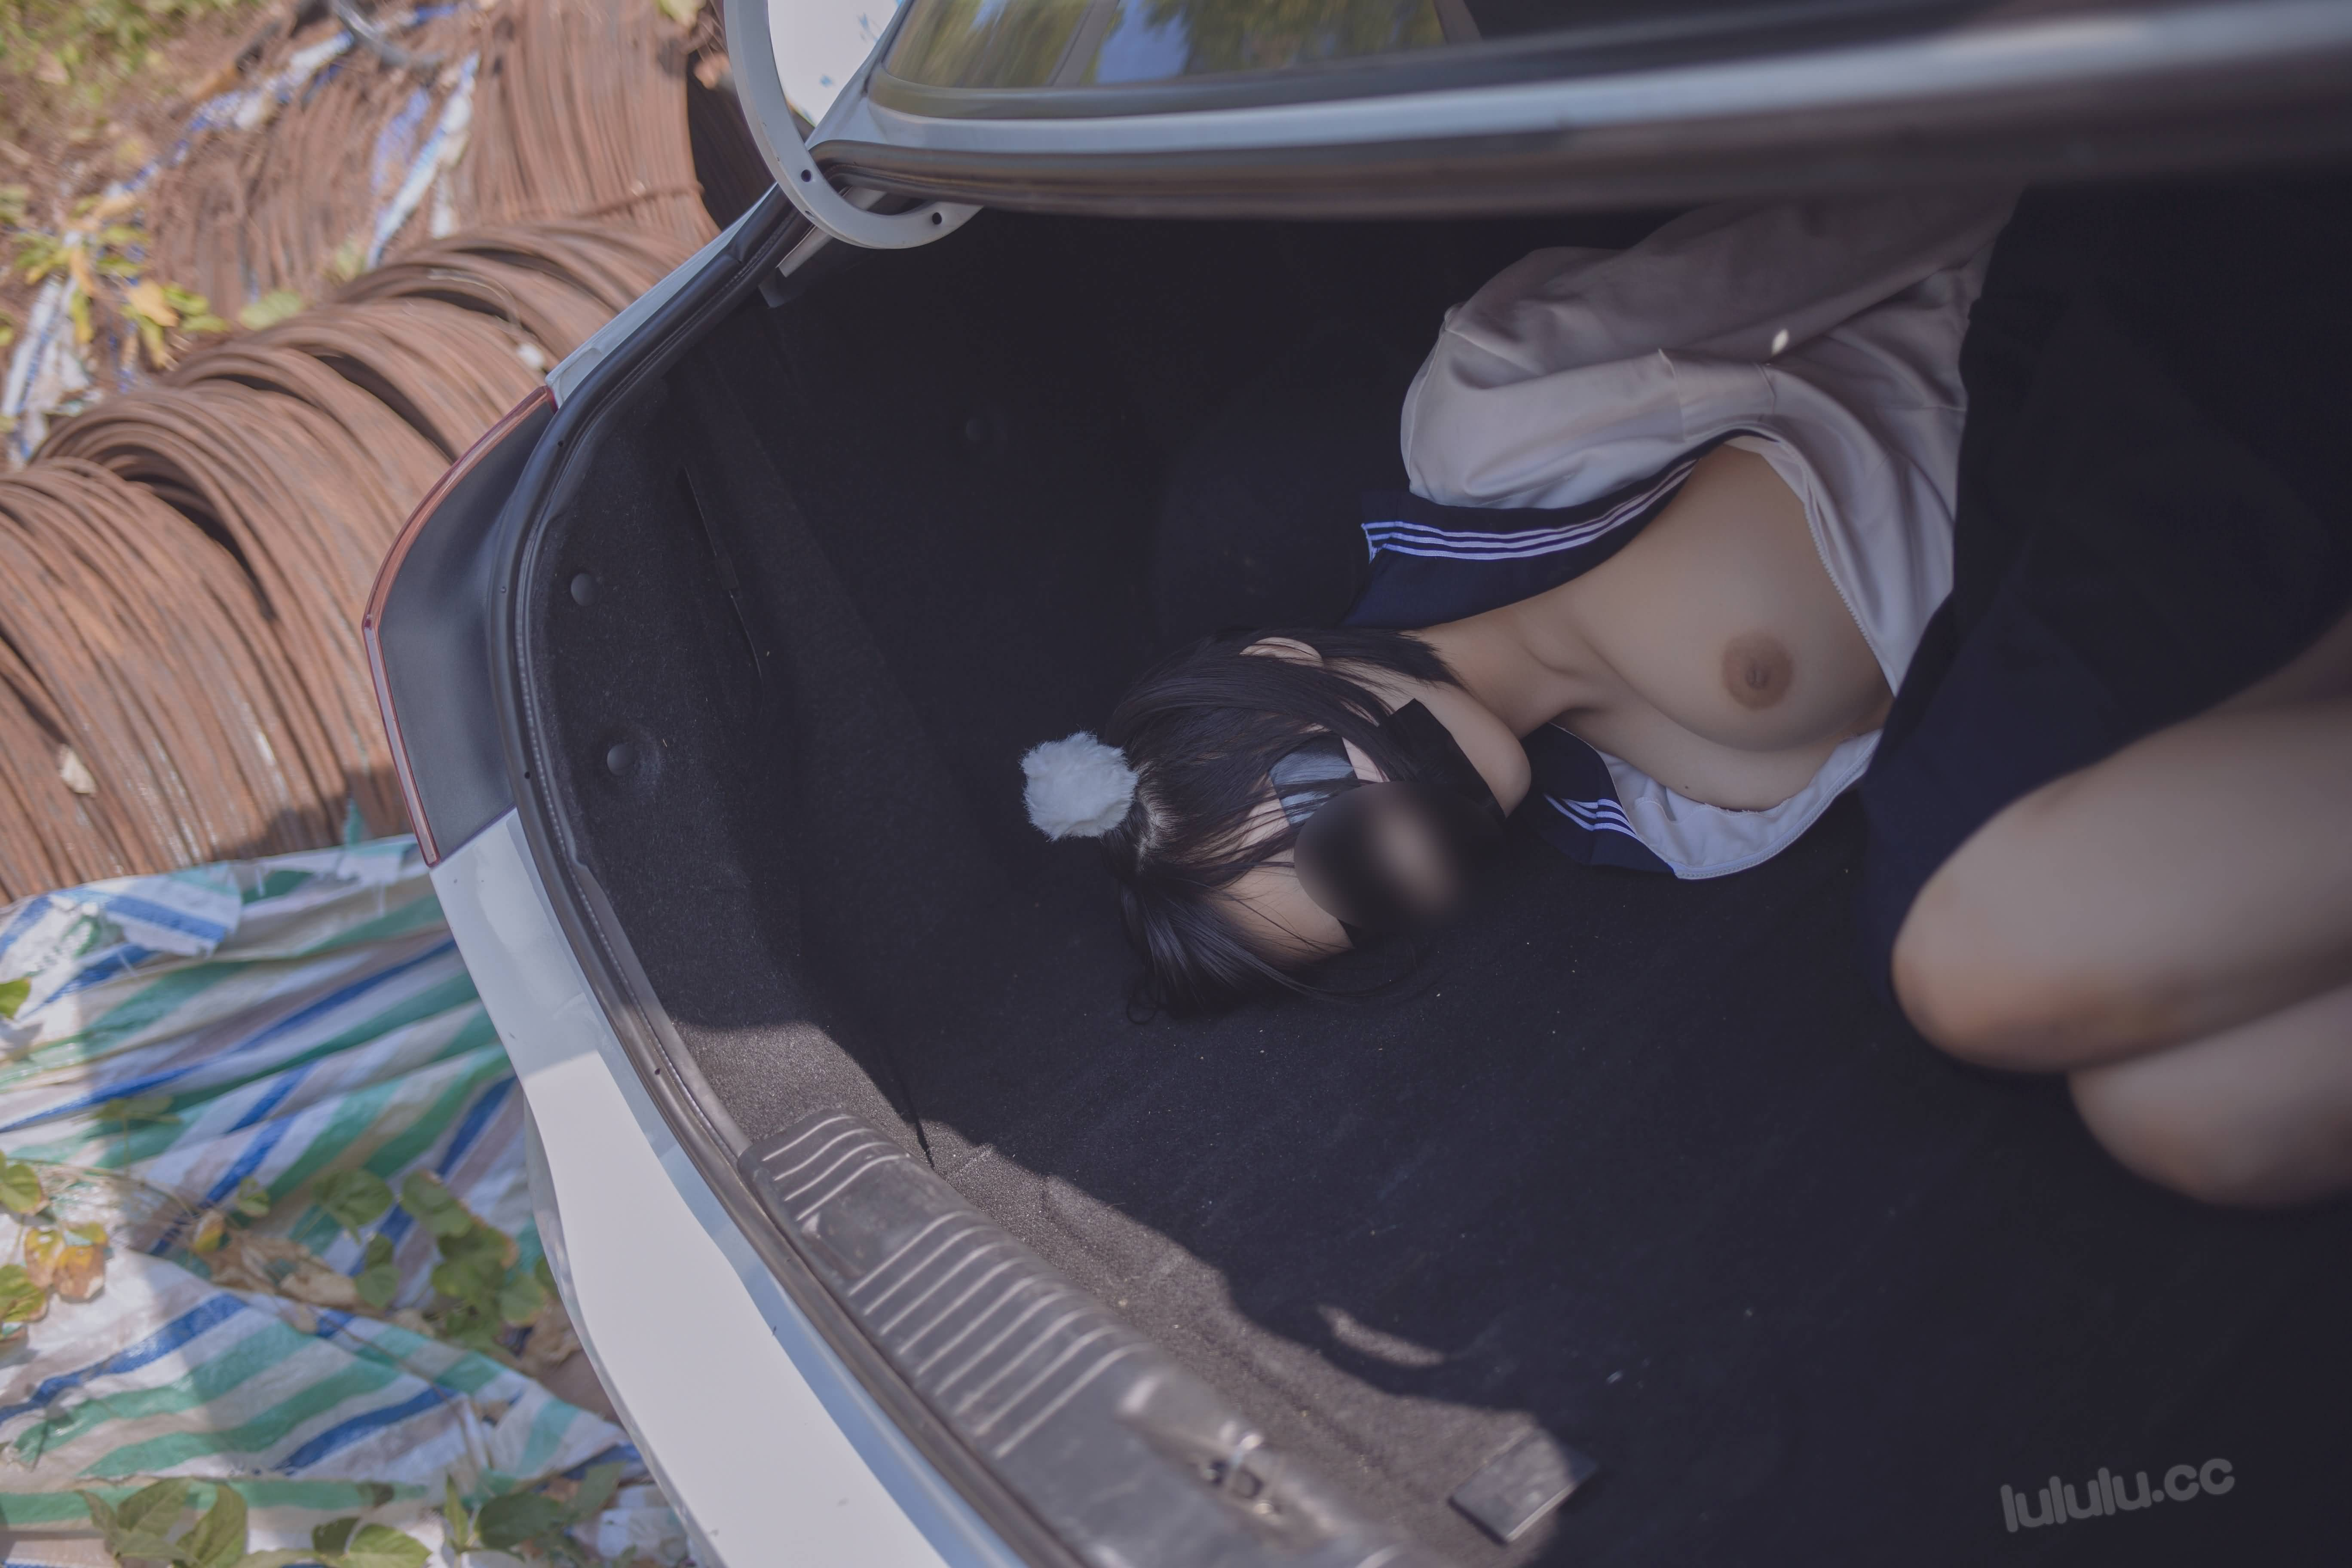 cP68LT - Japanese schoolgirls were kidnapped and stuffed into the trunk of car 悠宝三岁 JK服